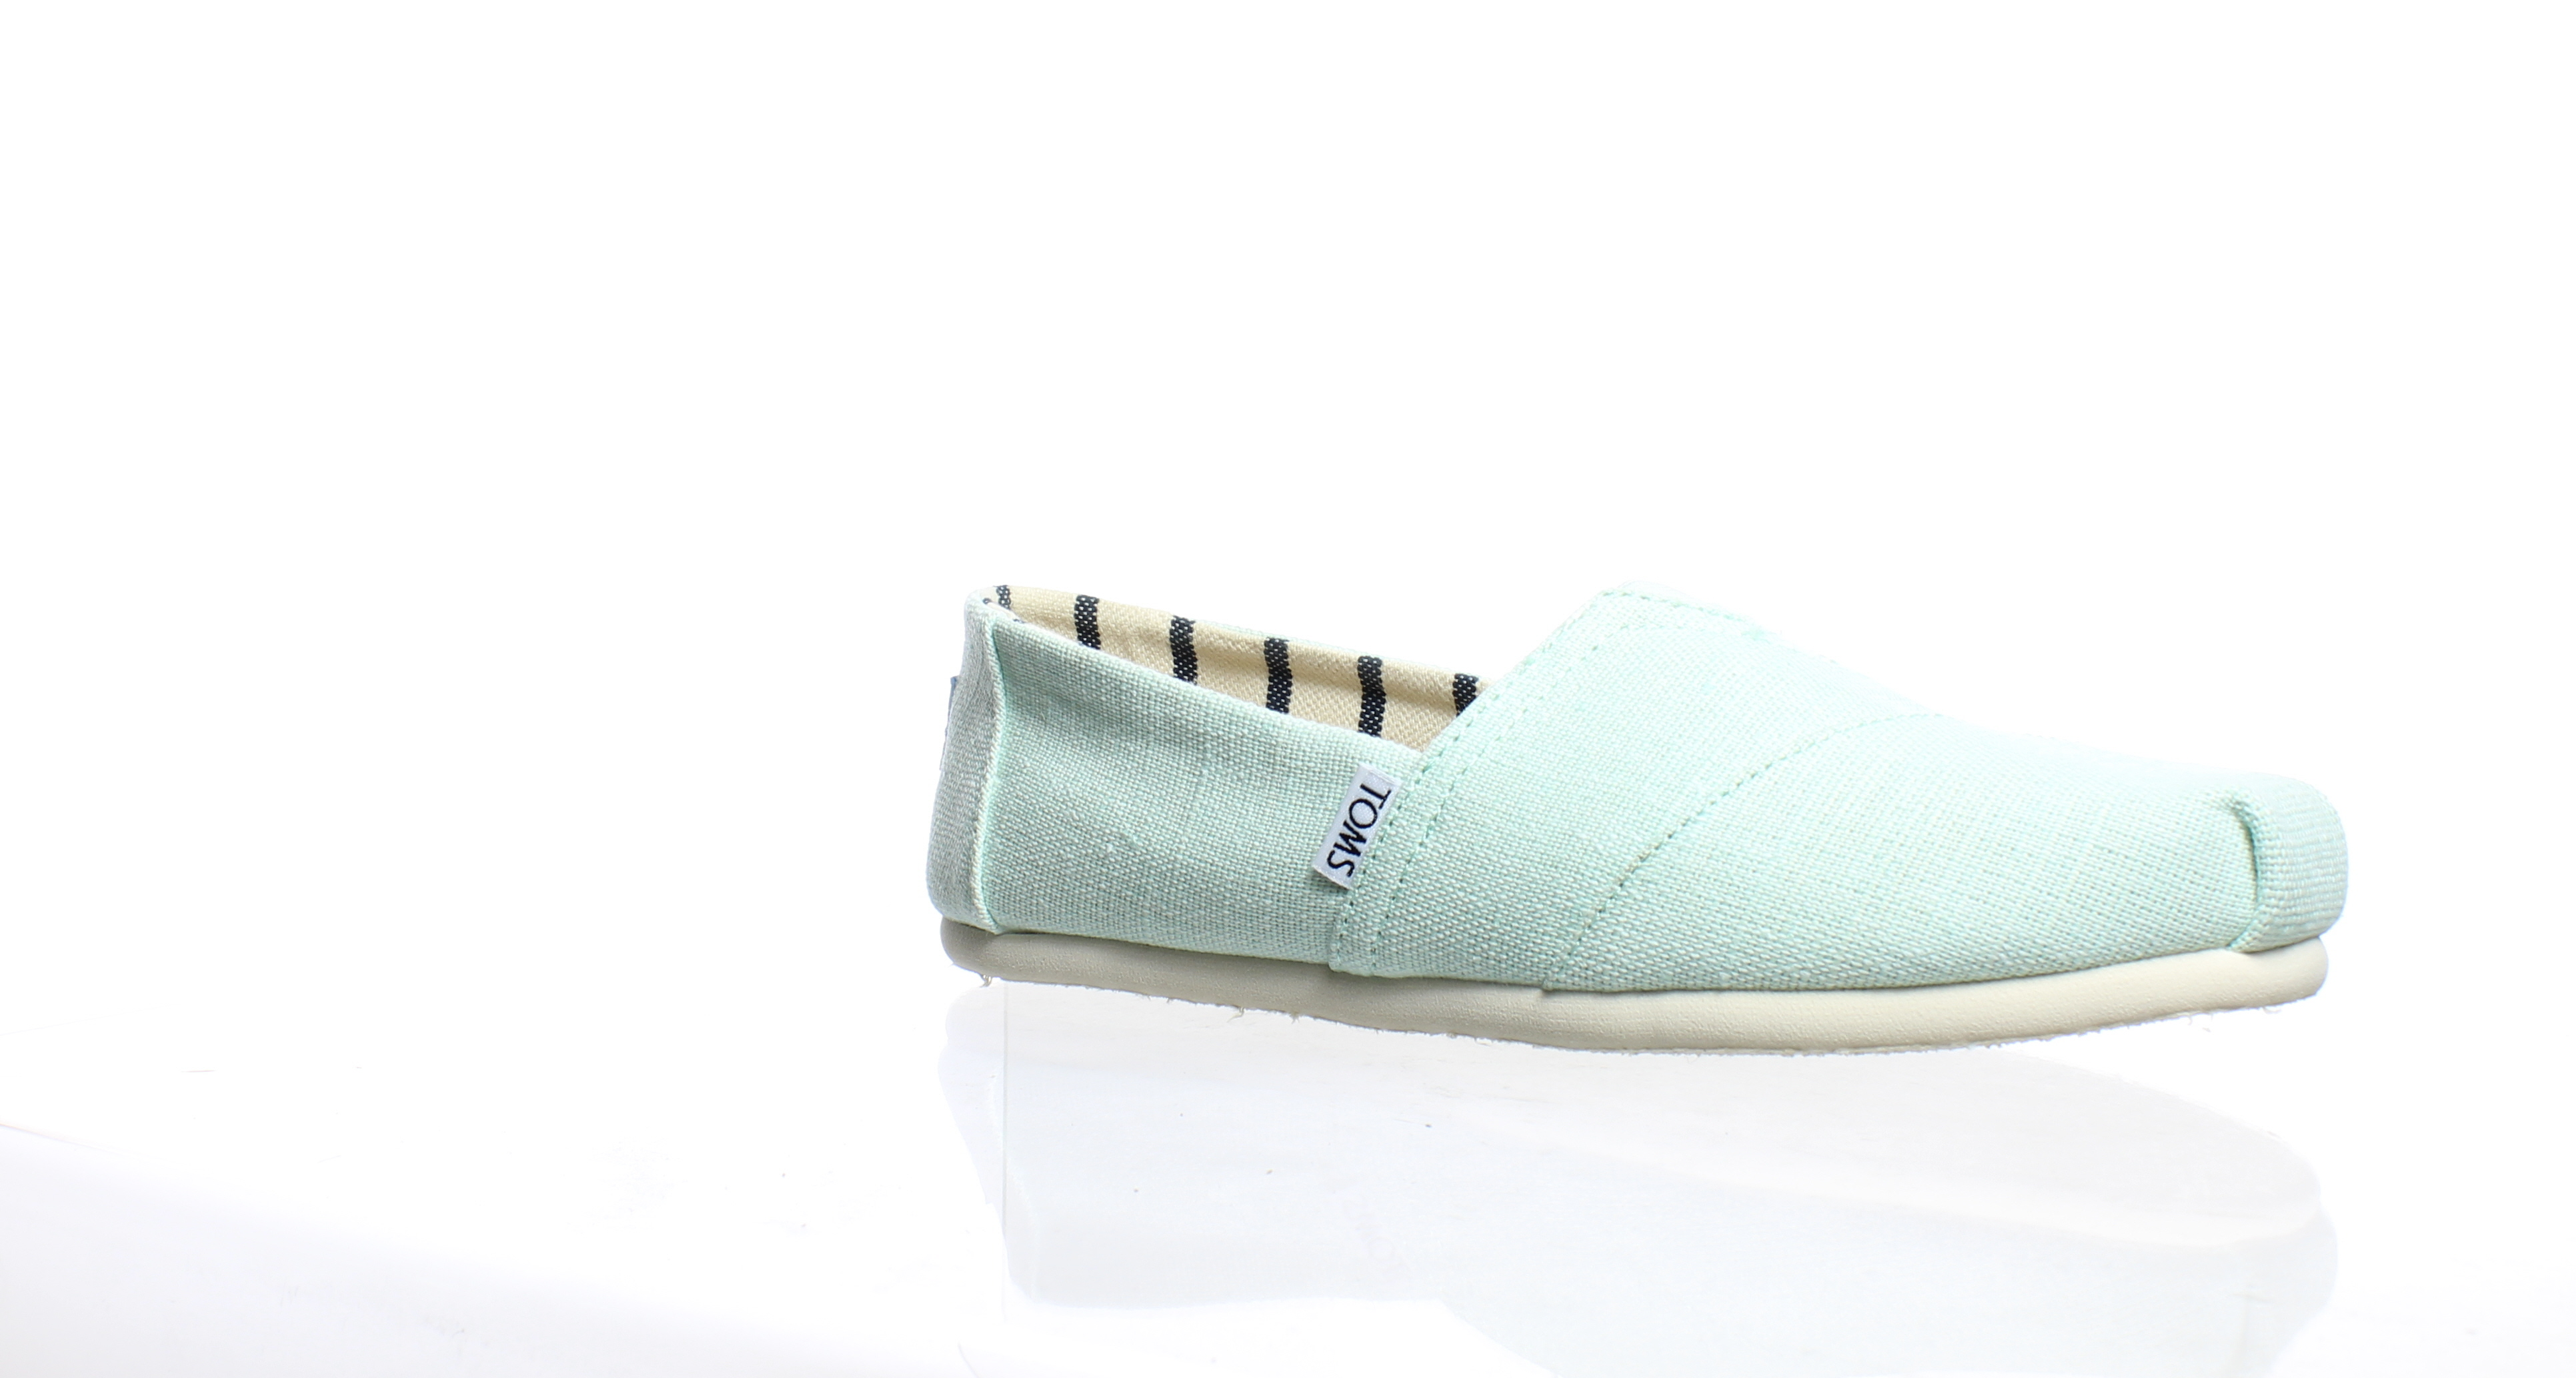 d2417668071 Details about TOMS Womens Classic Green Casual Flats Size 9.5 (185128)